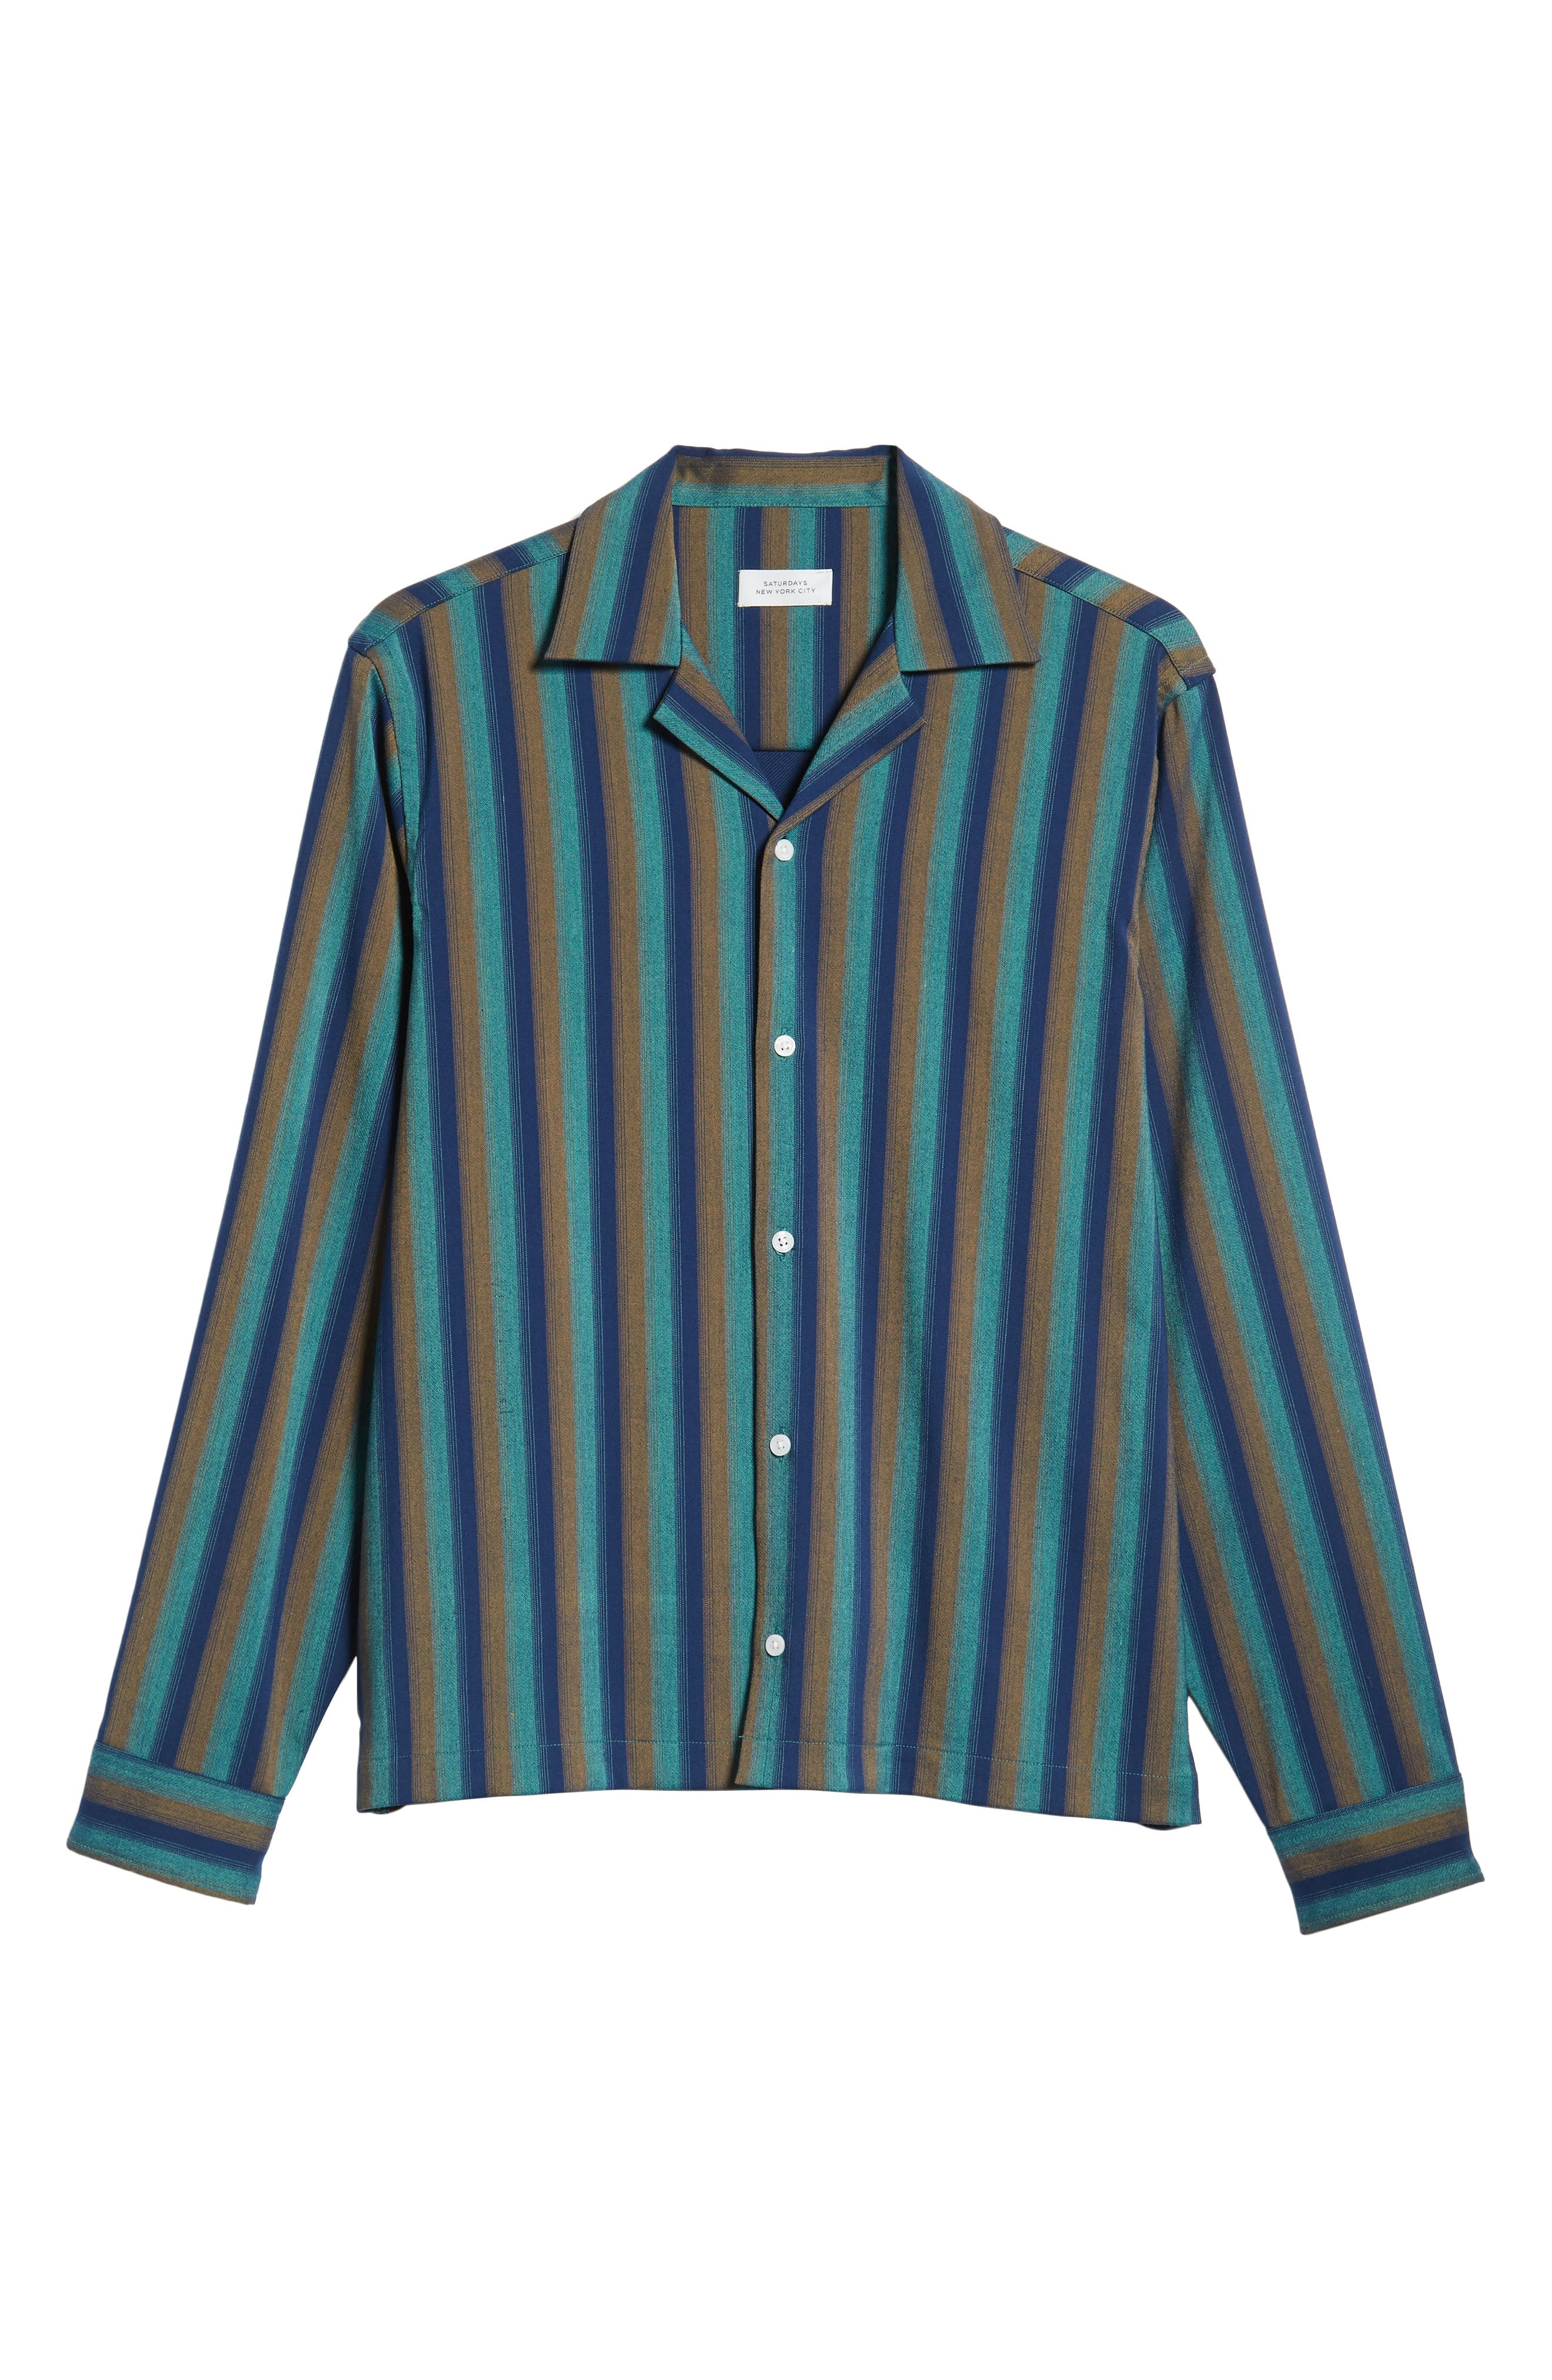 Marco Frequency Long Sleeve Woven Shirt,                             Alternate thumbnail 5, color,                             334